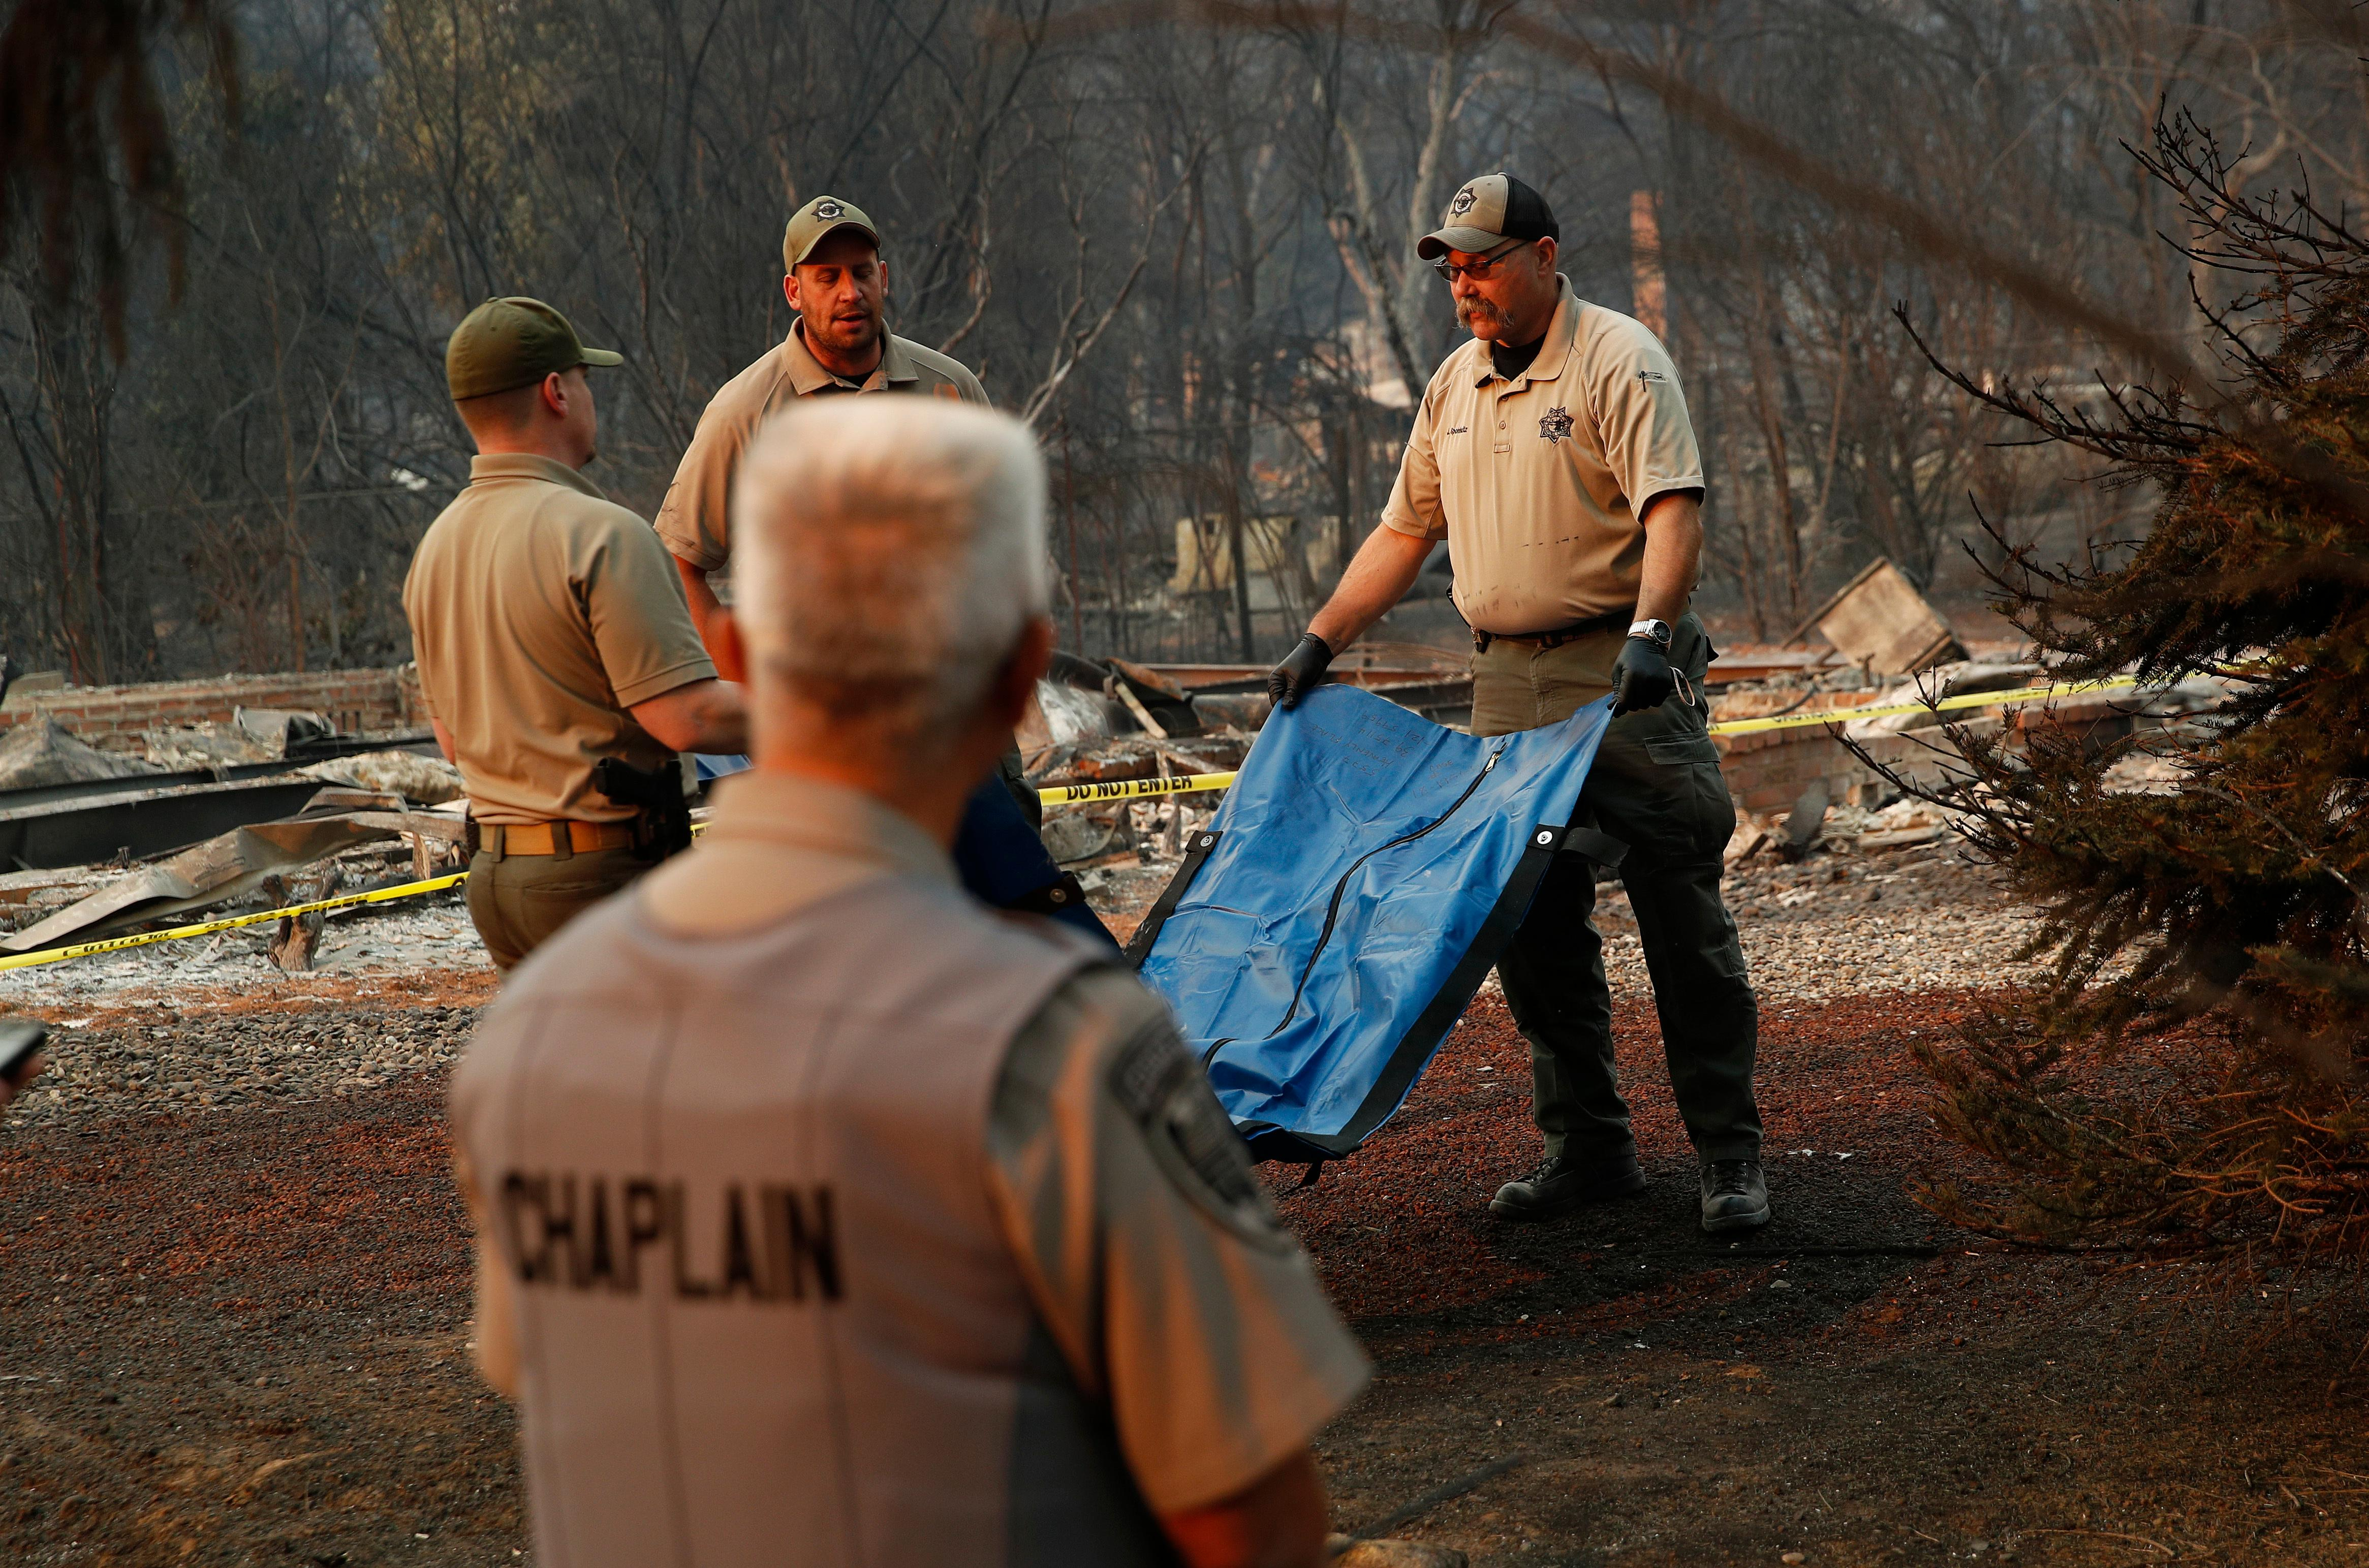 Deputy Coroner Justin Sponhaltz, right, of the Mariposa County Sheriff's Office, carries a bag with human remains found at a burned out home at the Camp Fire, Sunday, Nov. 11, 2018, in Paradise, Calif. (AP Photo/John Locher)